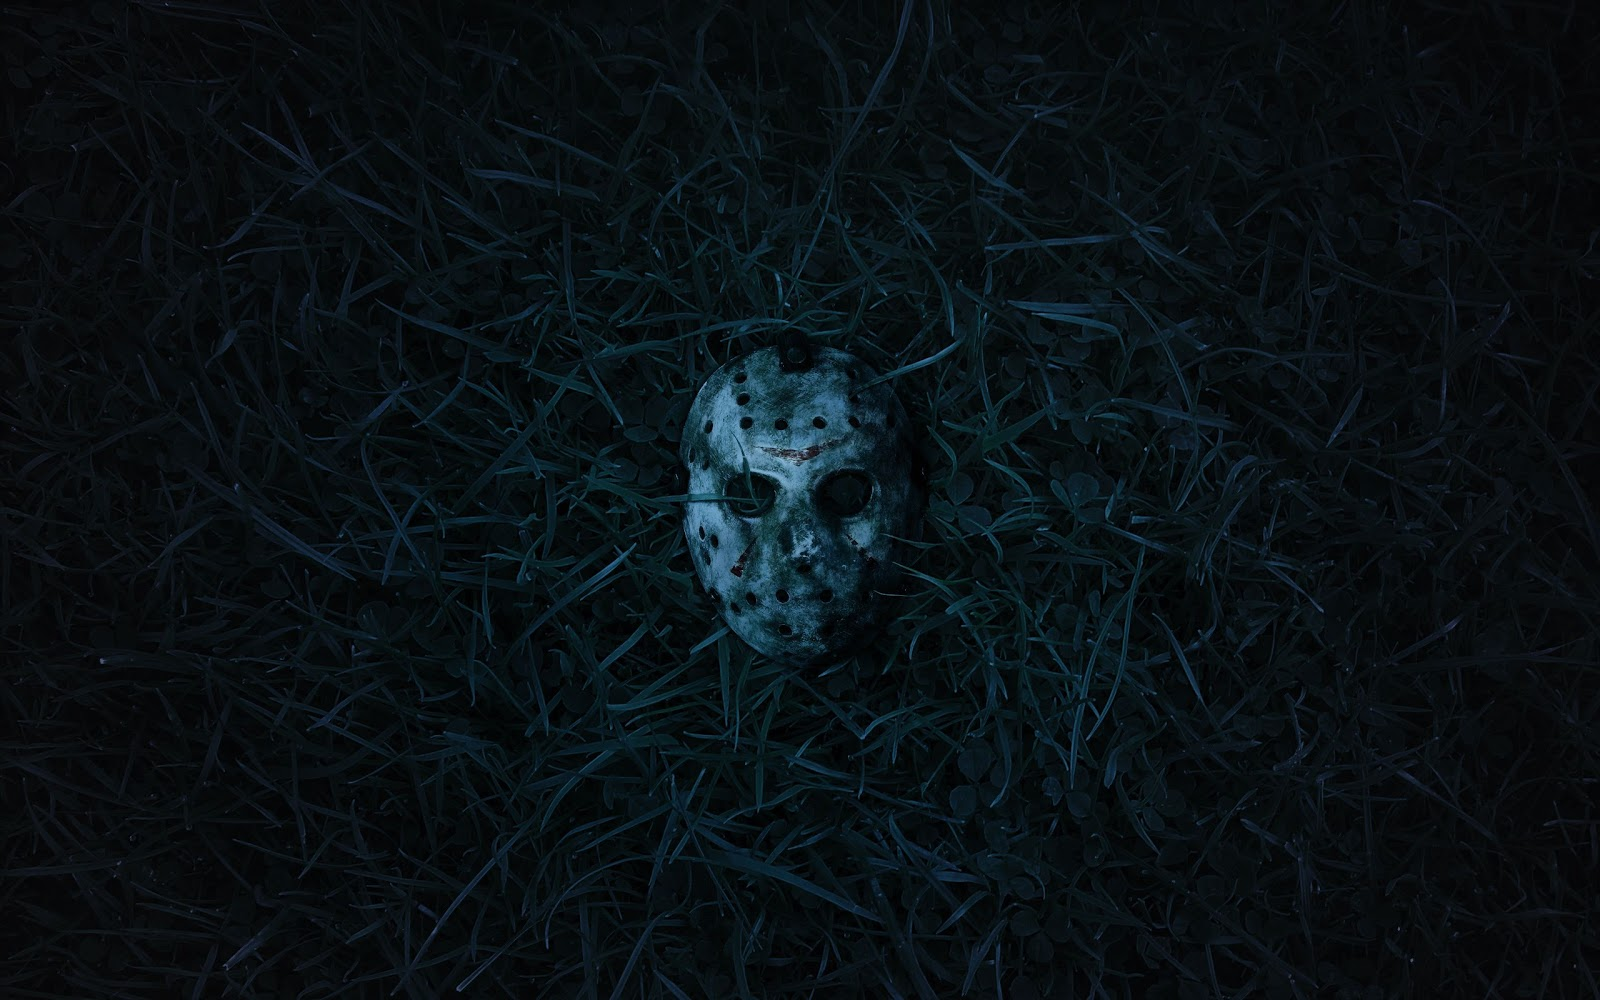 Wallpapers PC, Horror movie,